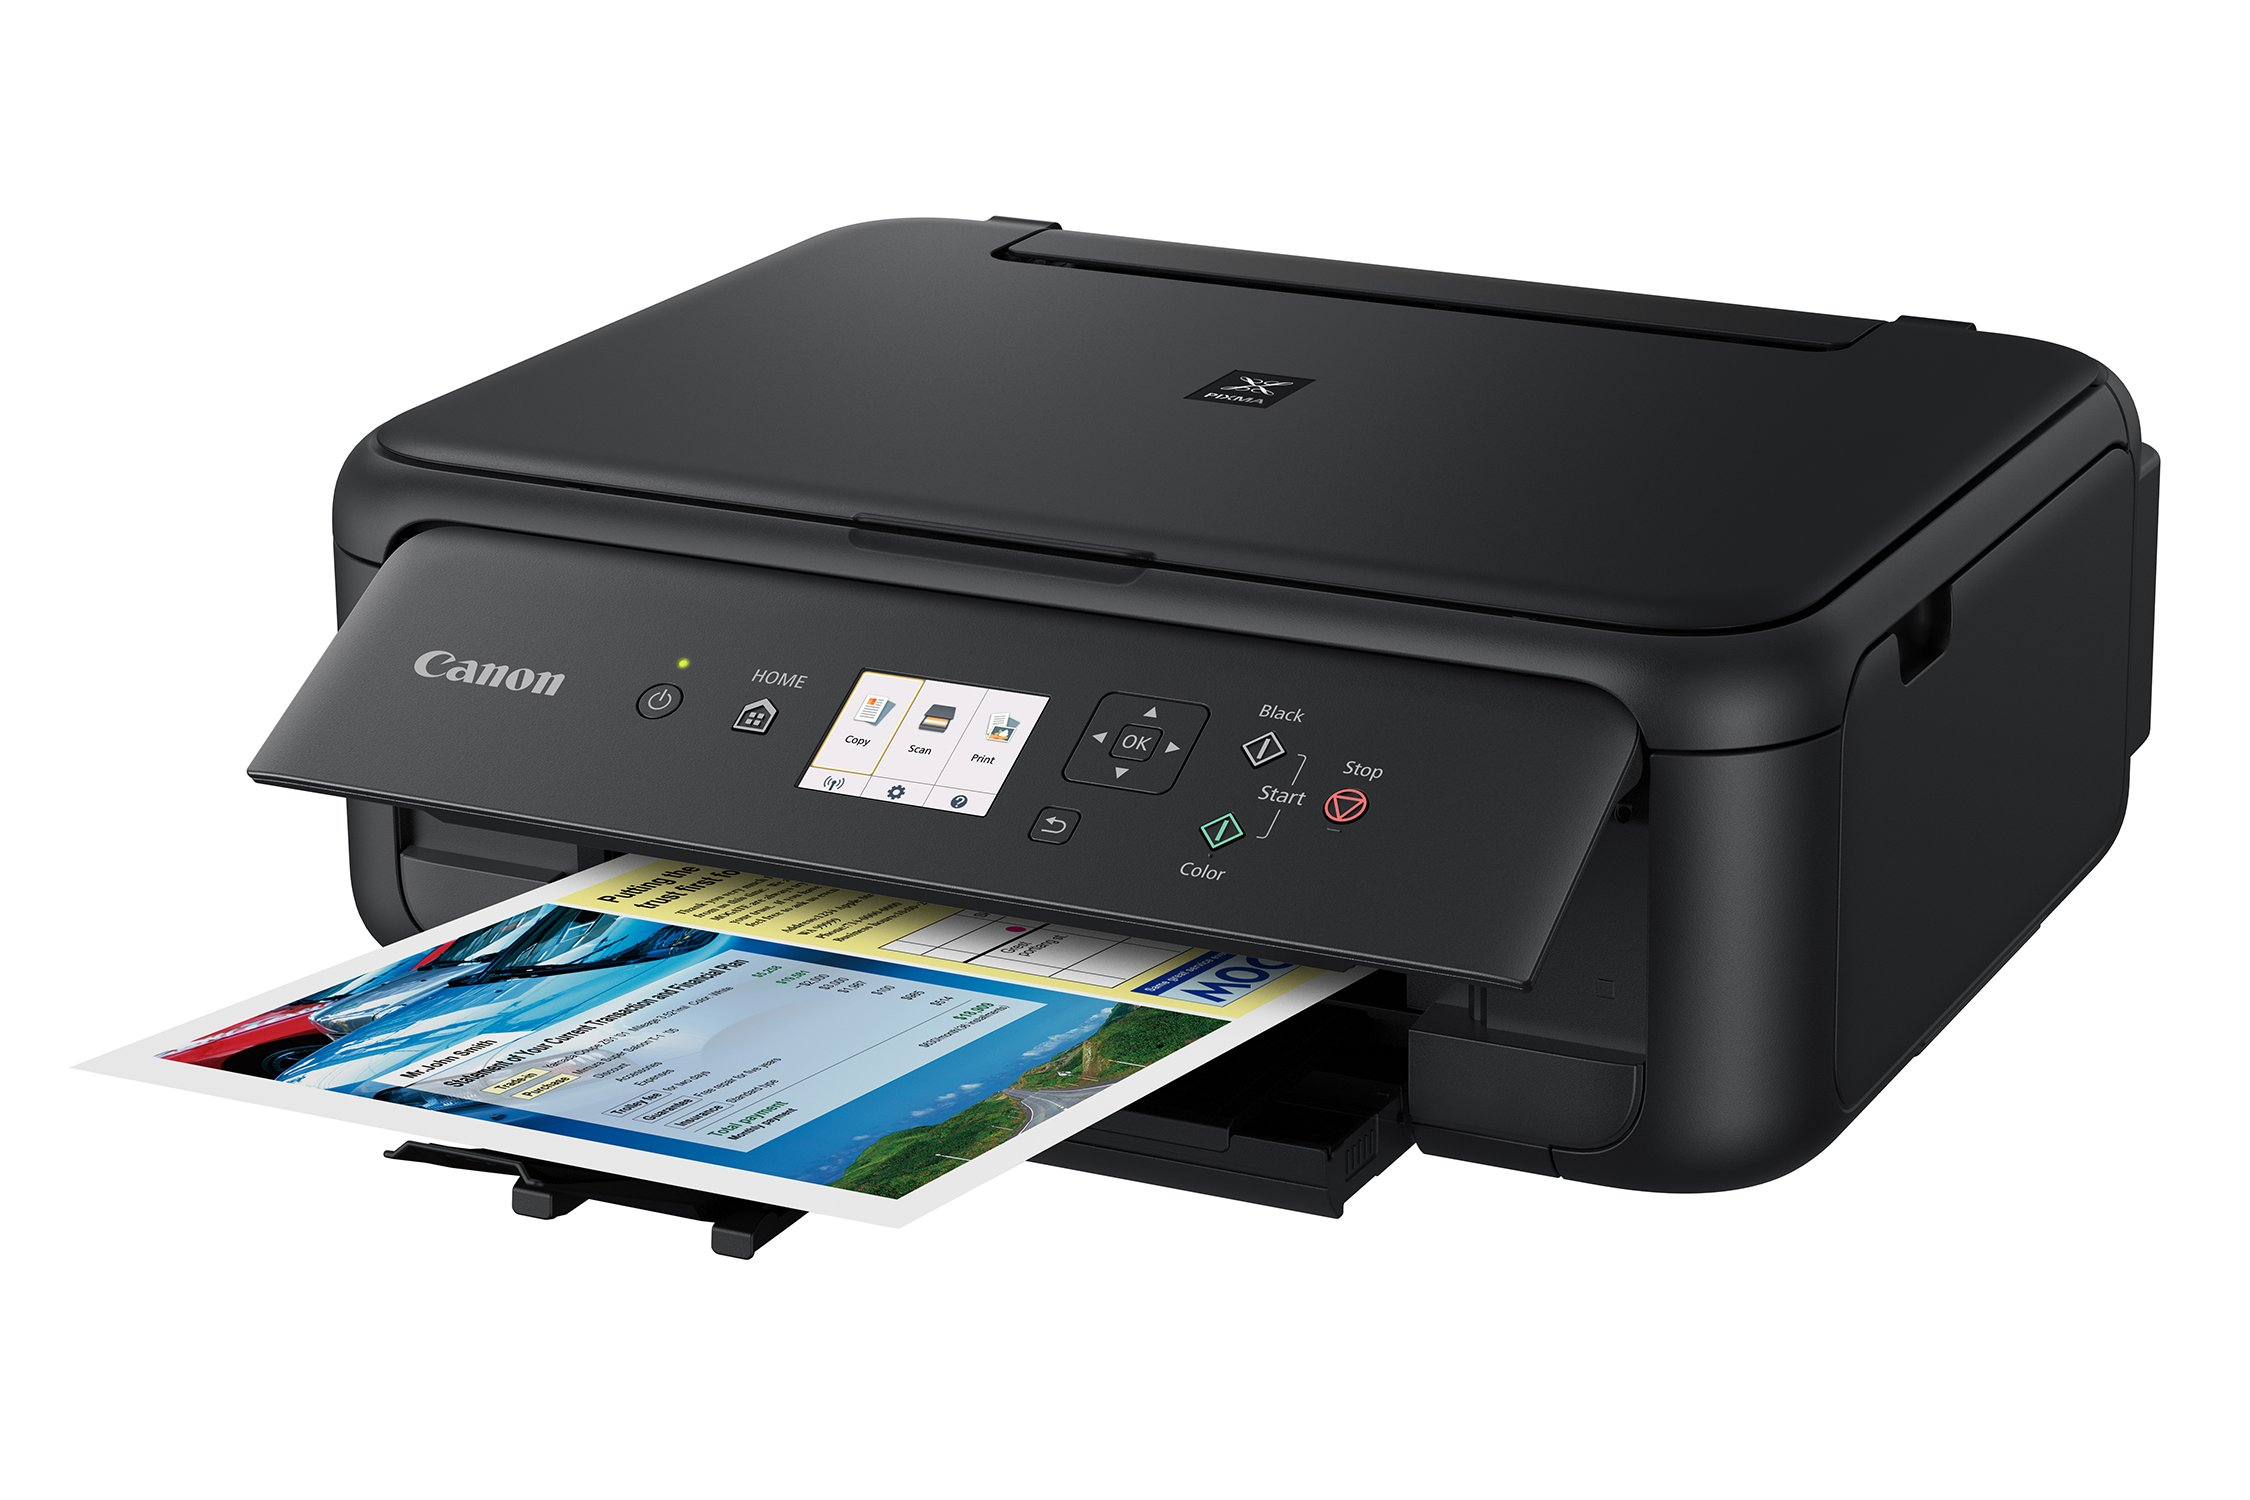 Canon TS5120 Wireless All-In-One Printer with Scanner and Copier: Mobile and Tablet Printing, with Airprint(TM) and Google Cloud Print compatible, Black by Canon (Image #2)